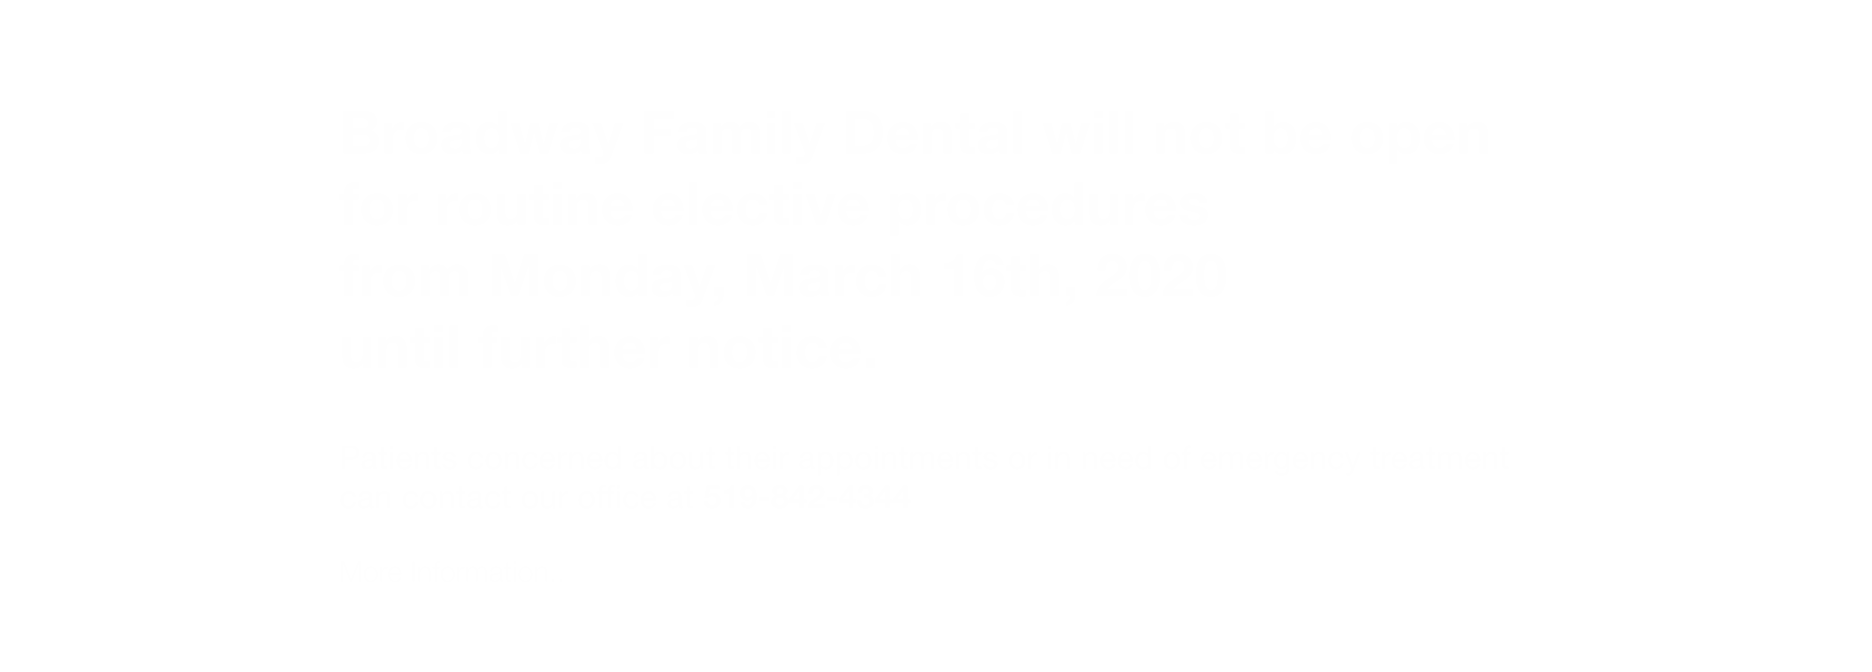 Broadway Family Dental - Office Closed